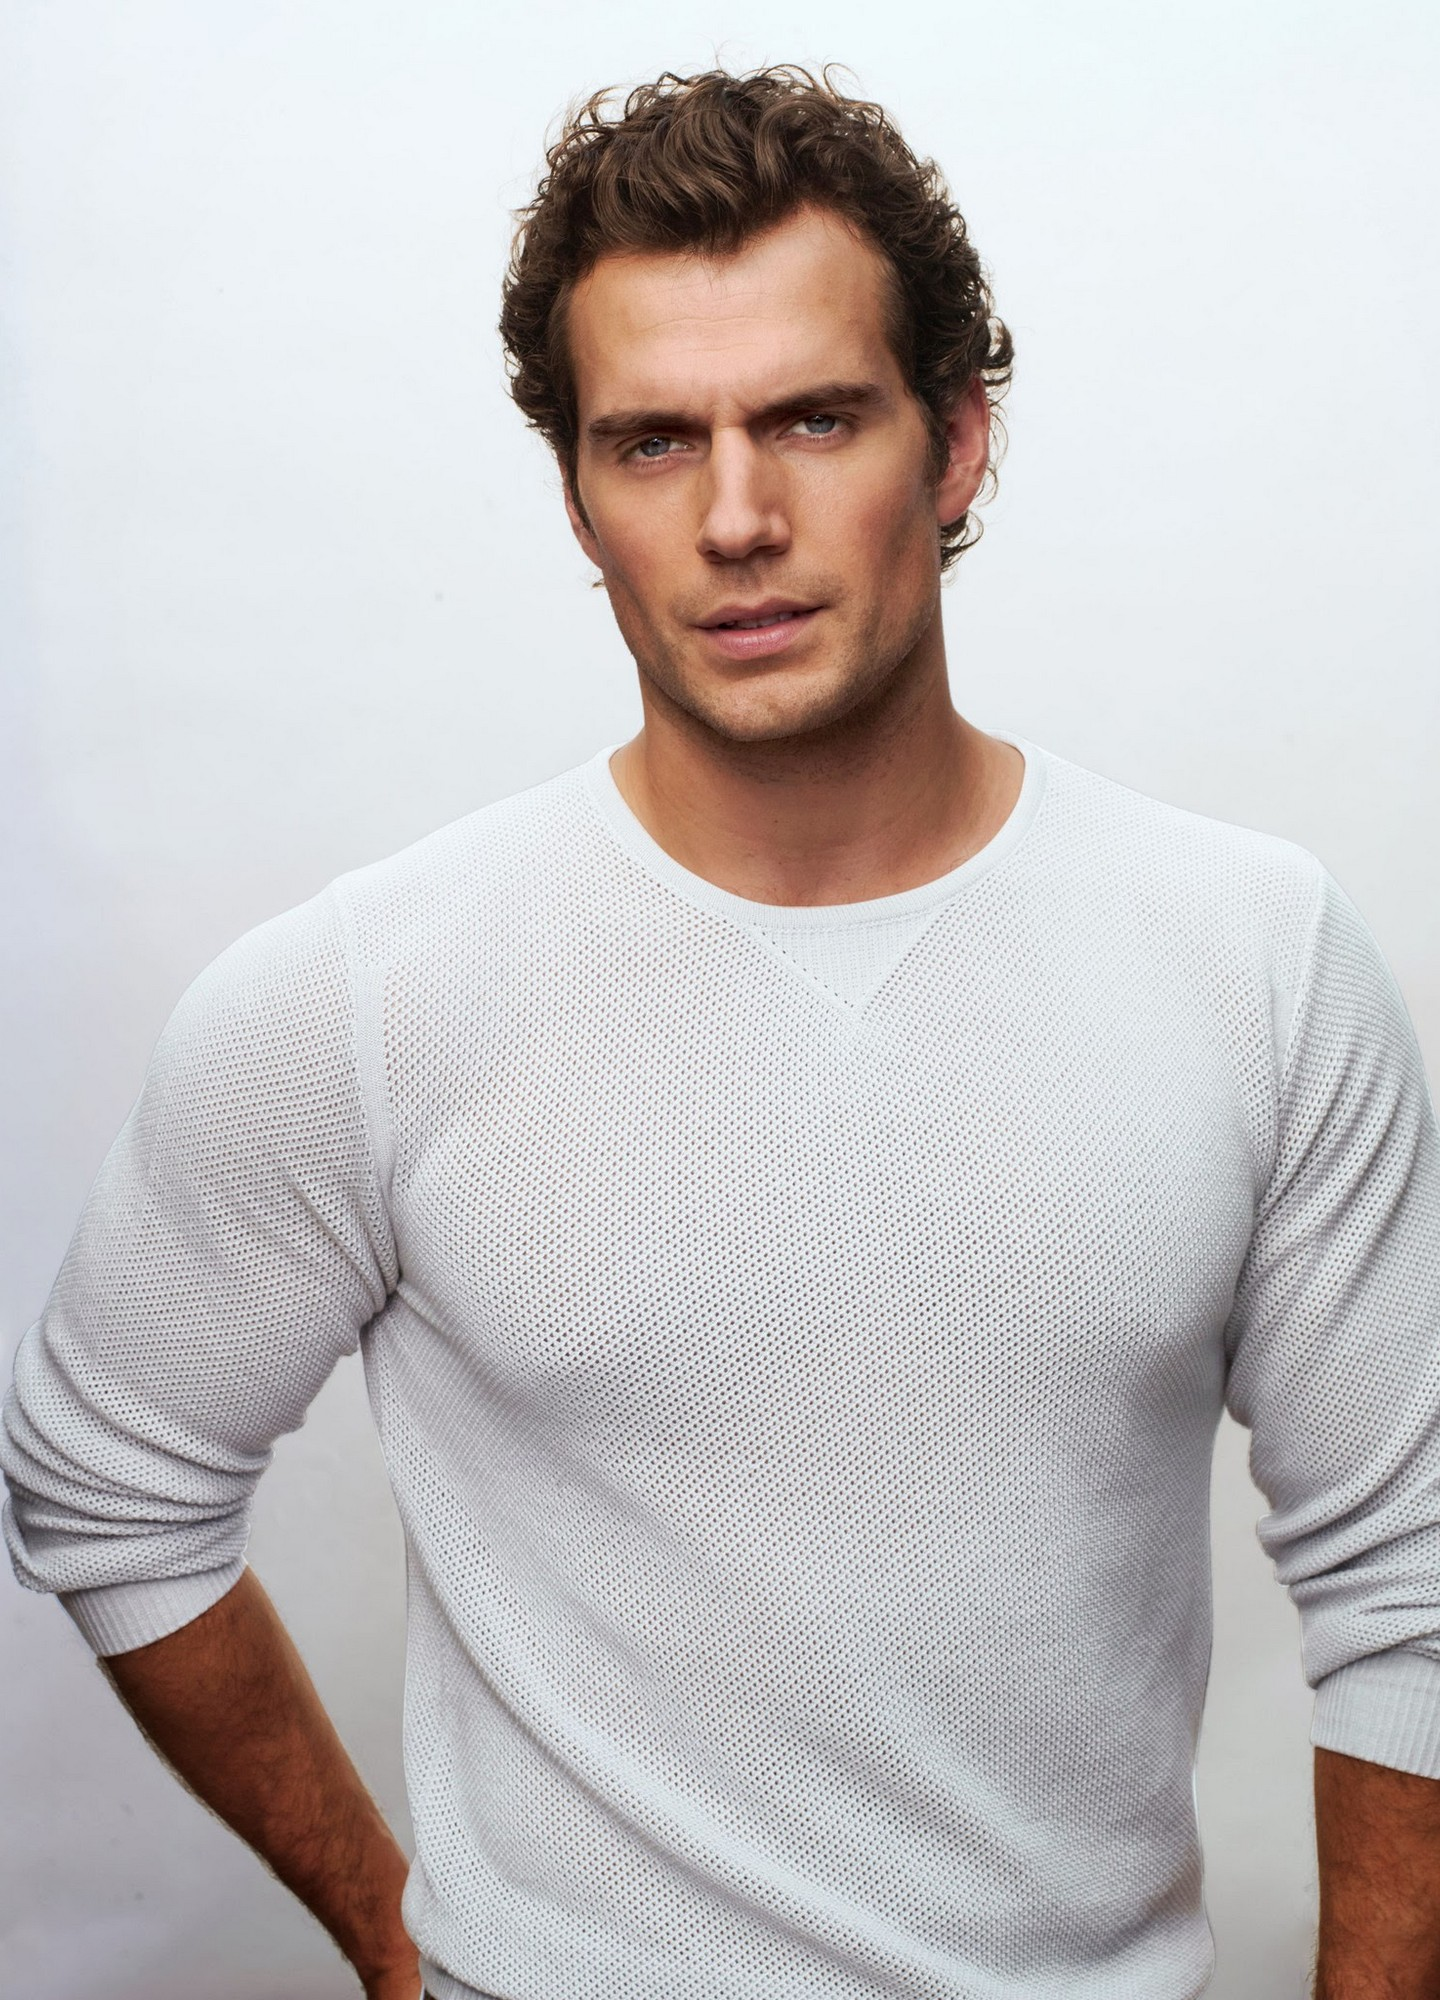 Henry Cavill Backgrounds, Compatible - PC, Mobile, Gadgets| 1440x2000 px